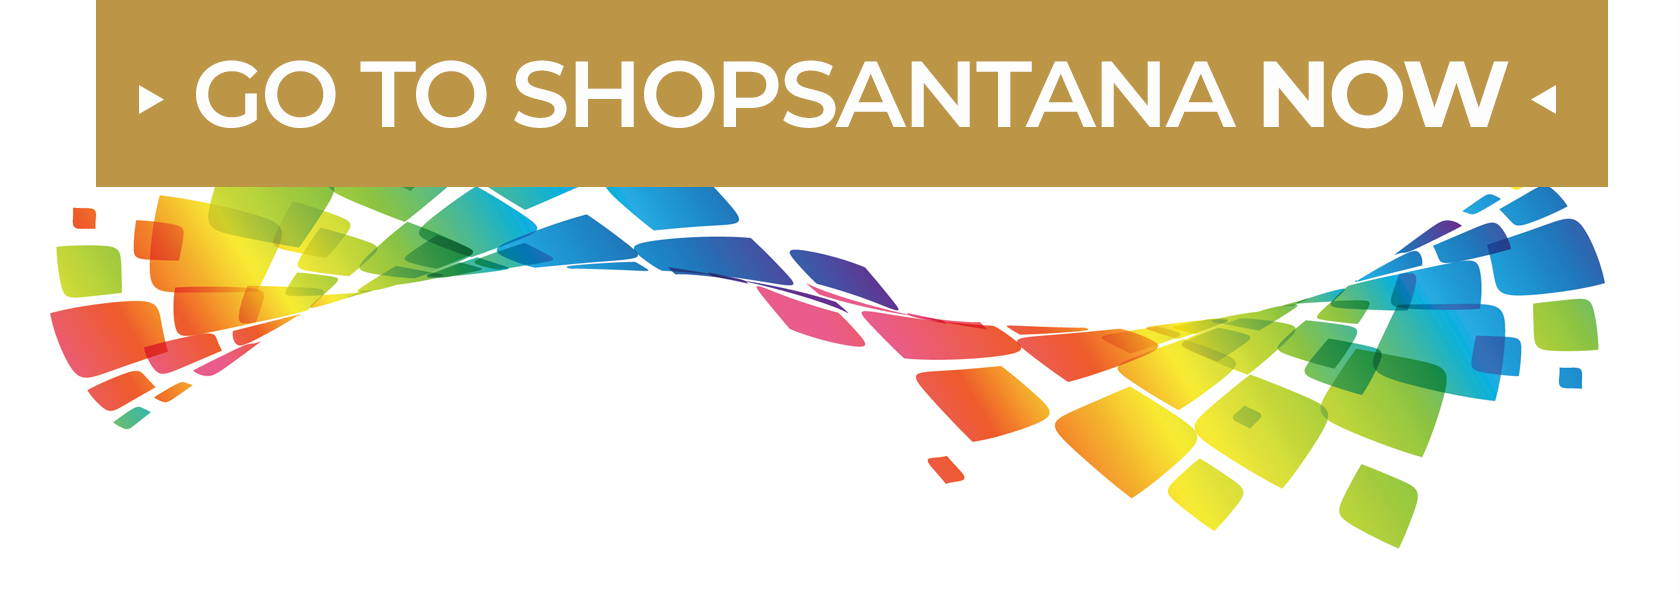 Go to shopsantana.com